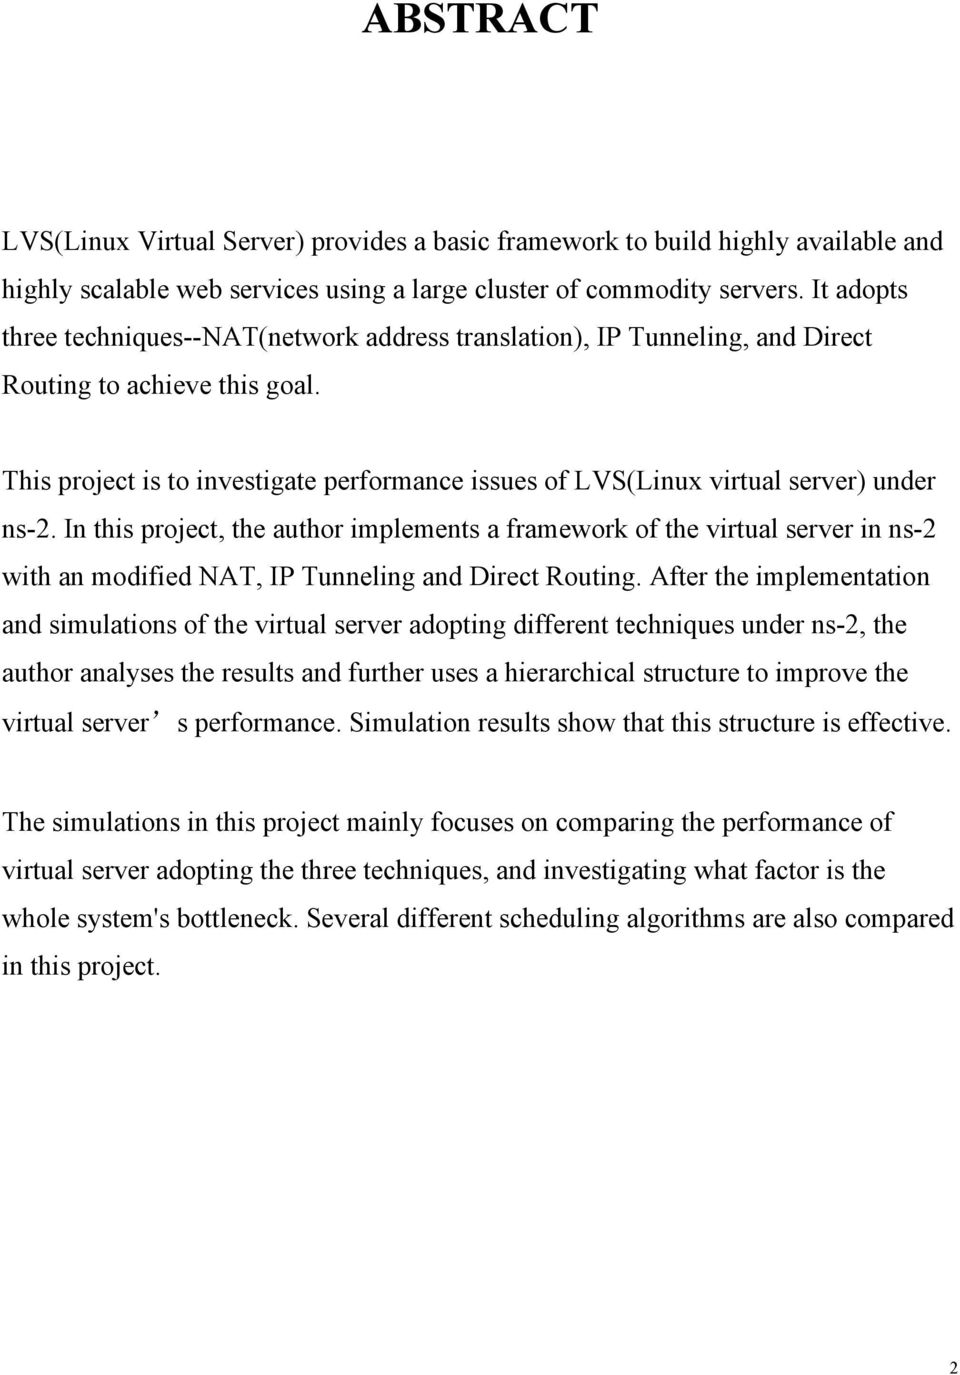 This project is to investigate performance issues of LVS(Linux virtual server) under ns-2.